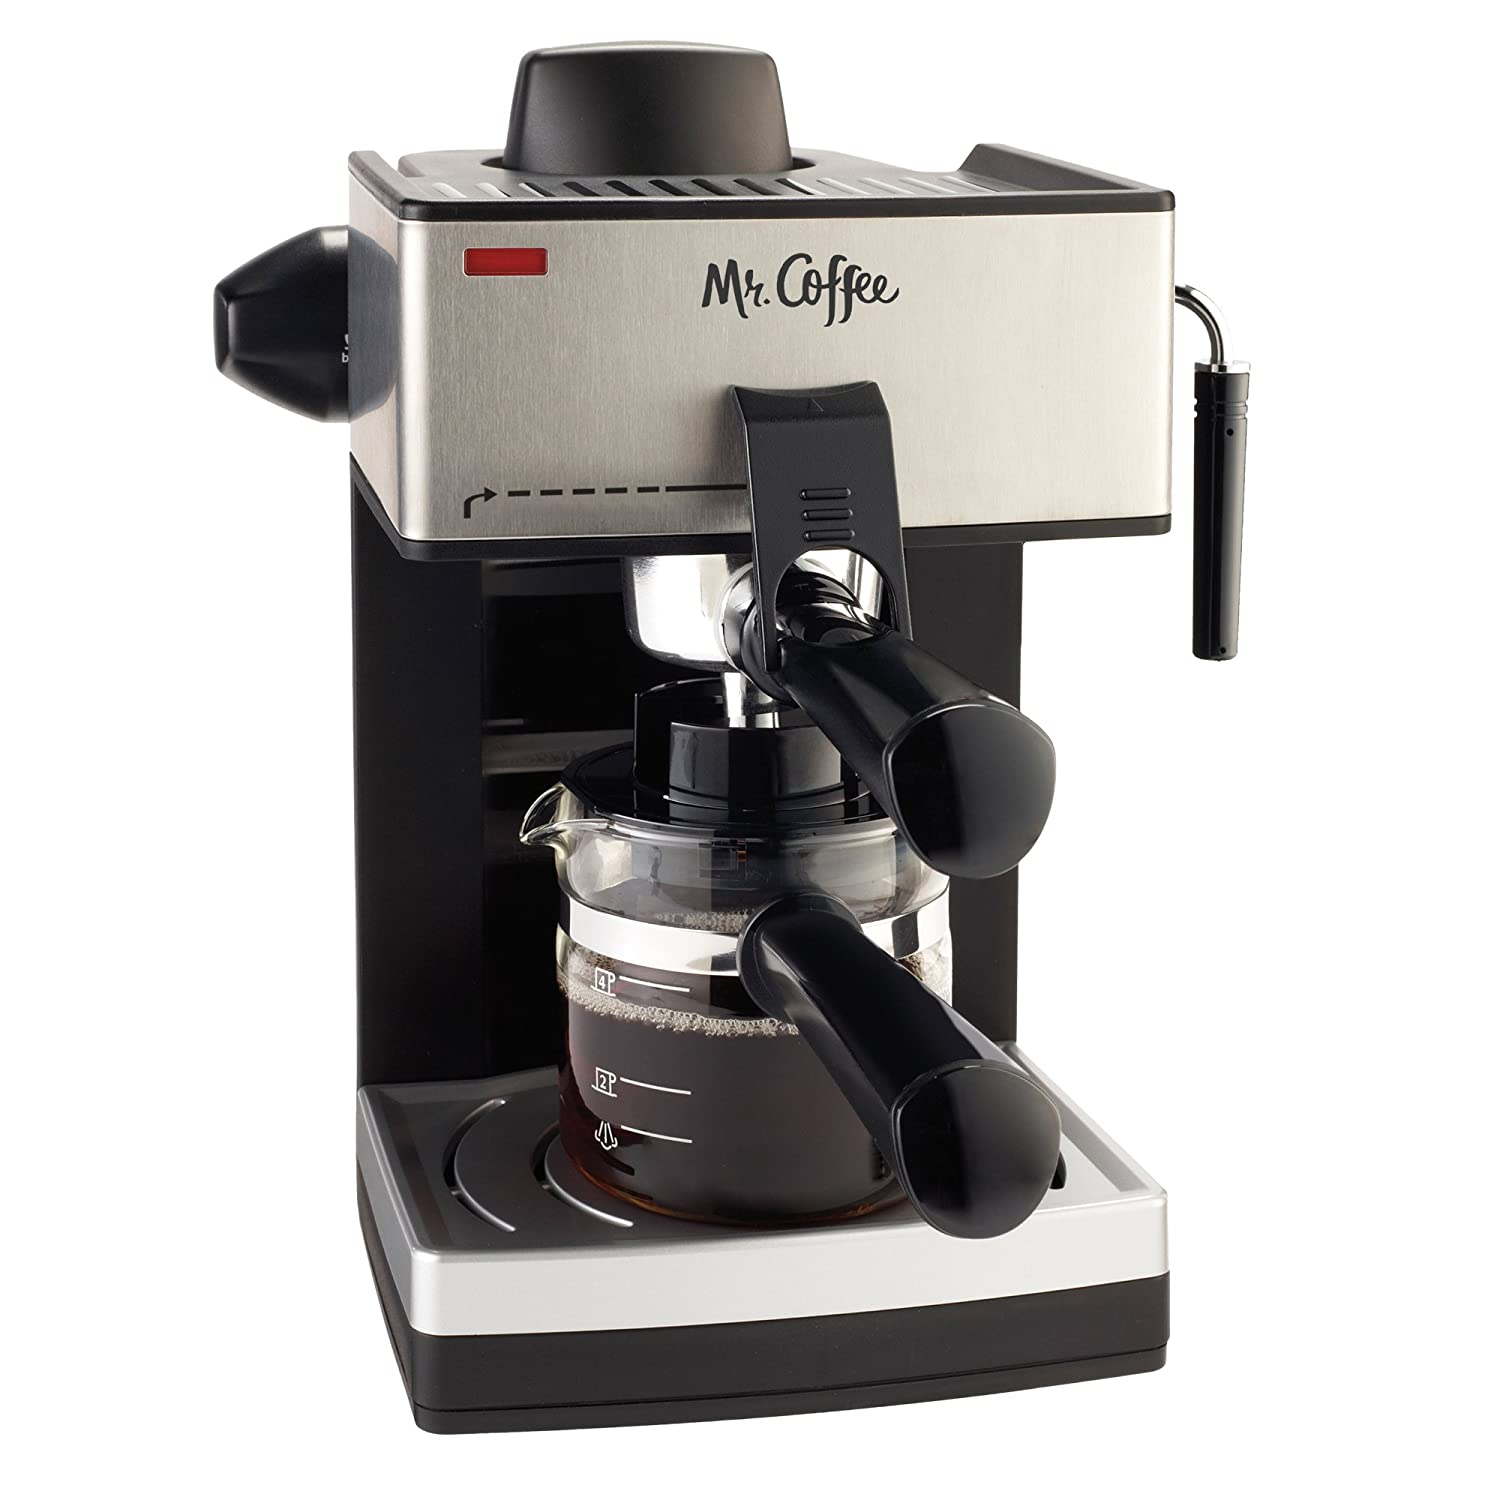 Electronic Coffee For Machines amazon com mr coffee 4 cup steam espresso system with milk frother ecm160 kitchen dining